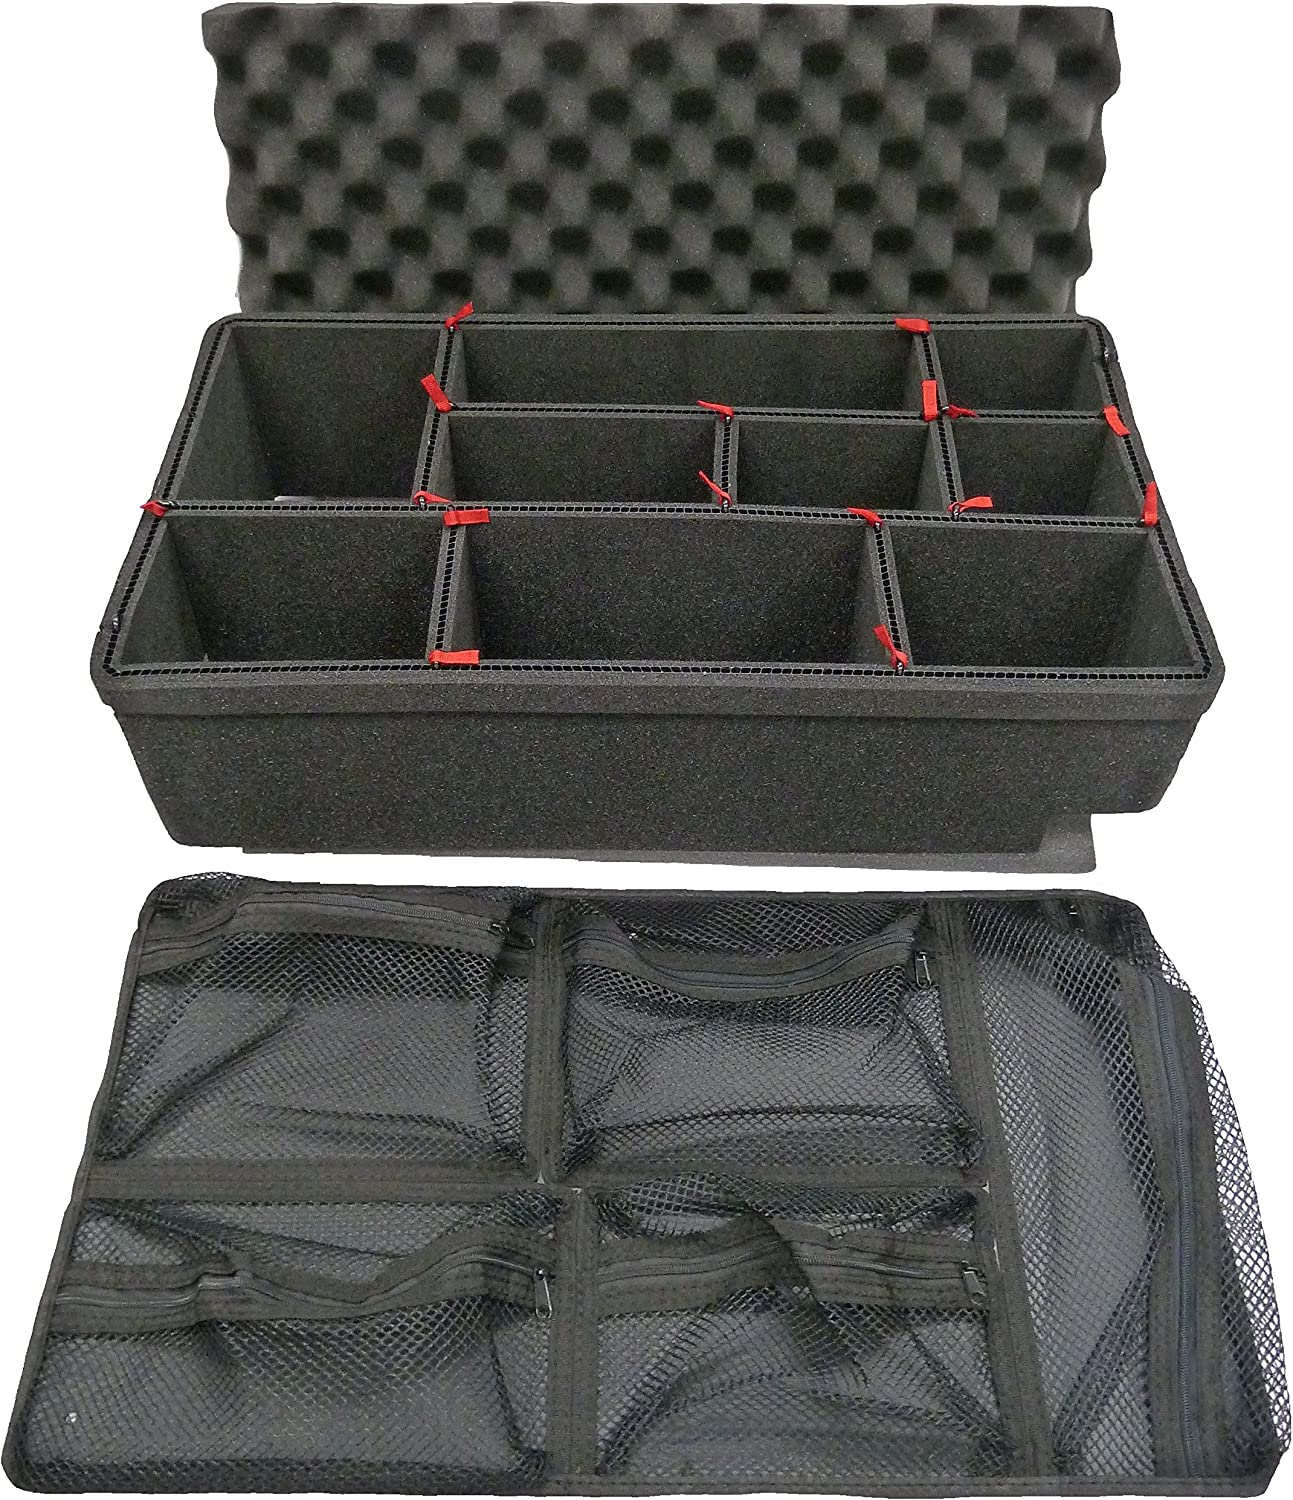 Grey CVPKG Padded dividers to fit The Pelican 1510 case.